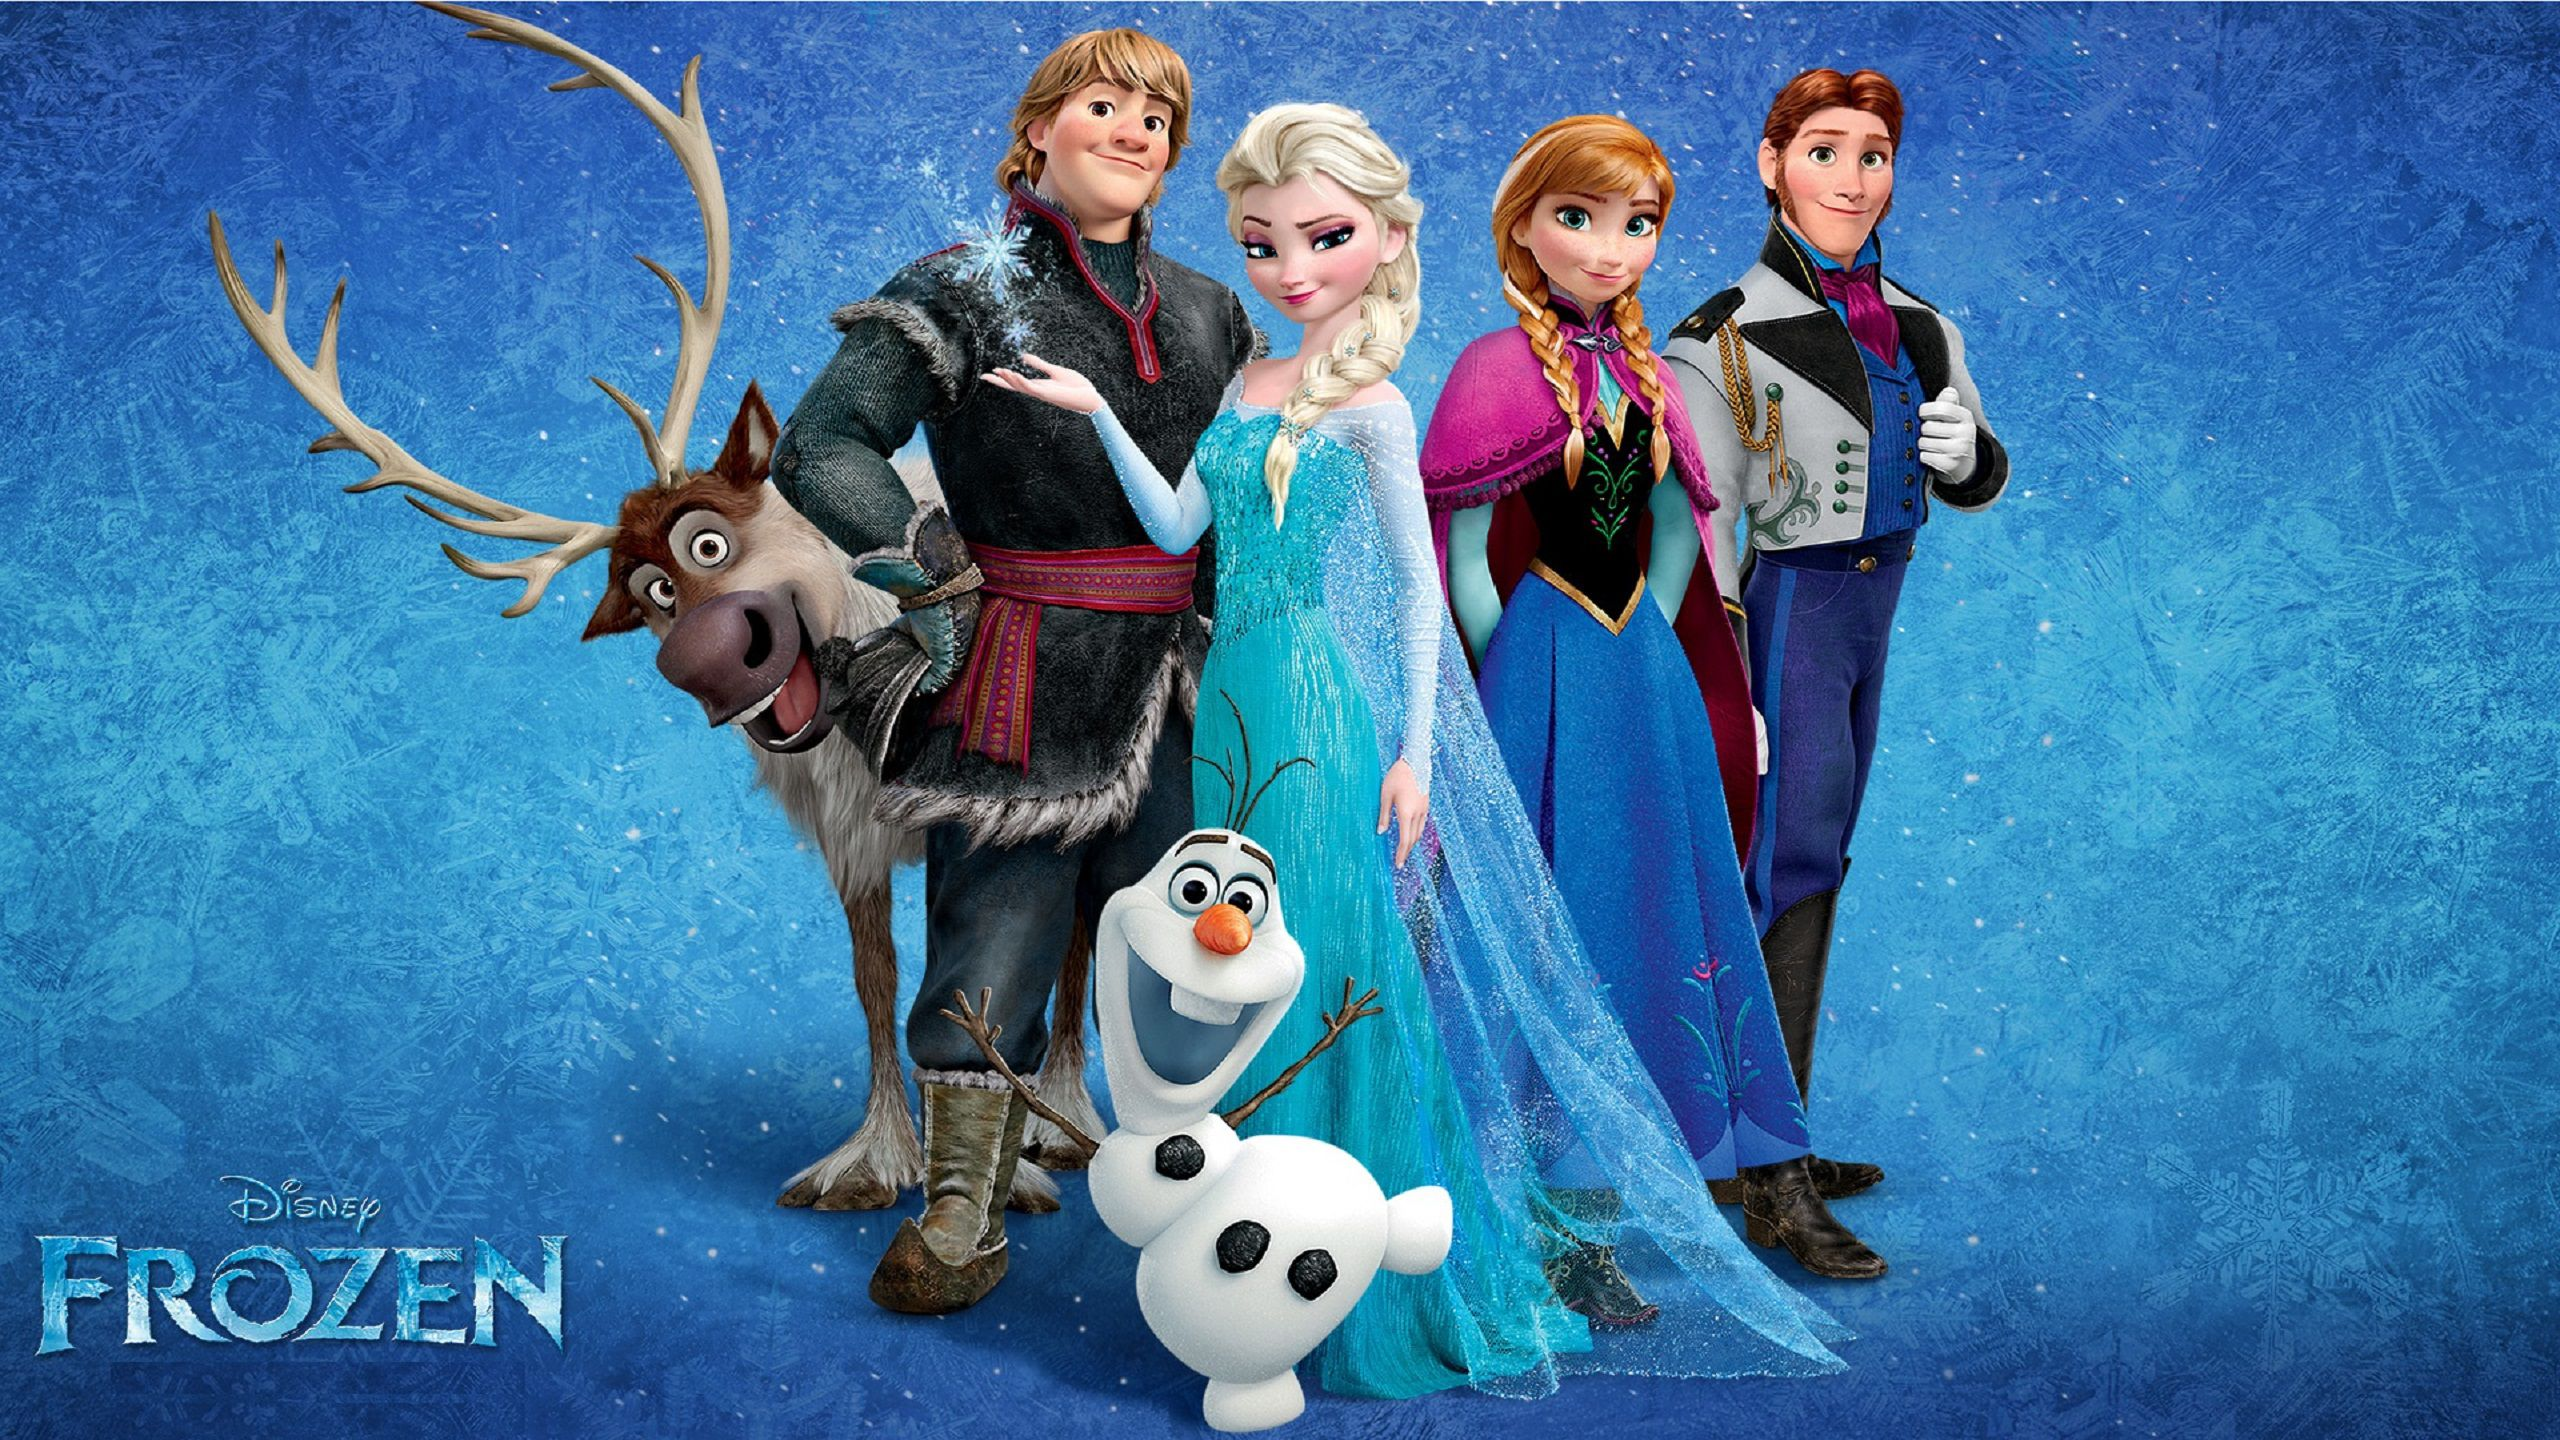 Frozen wallpaper & poster